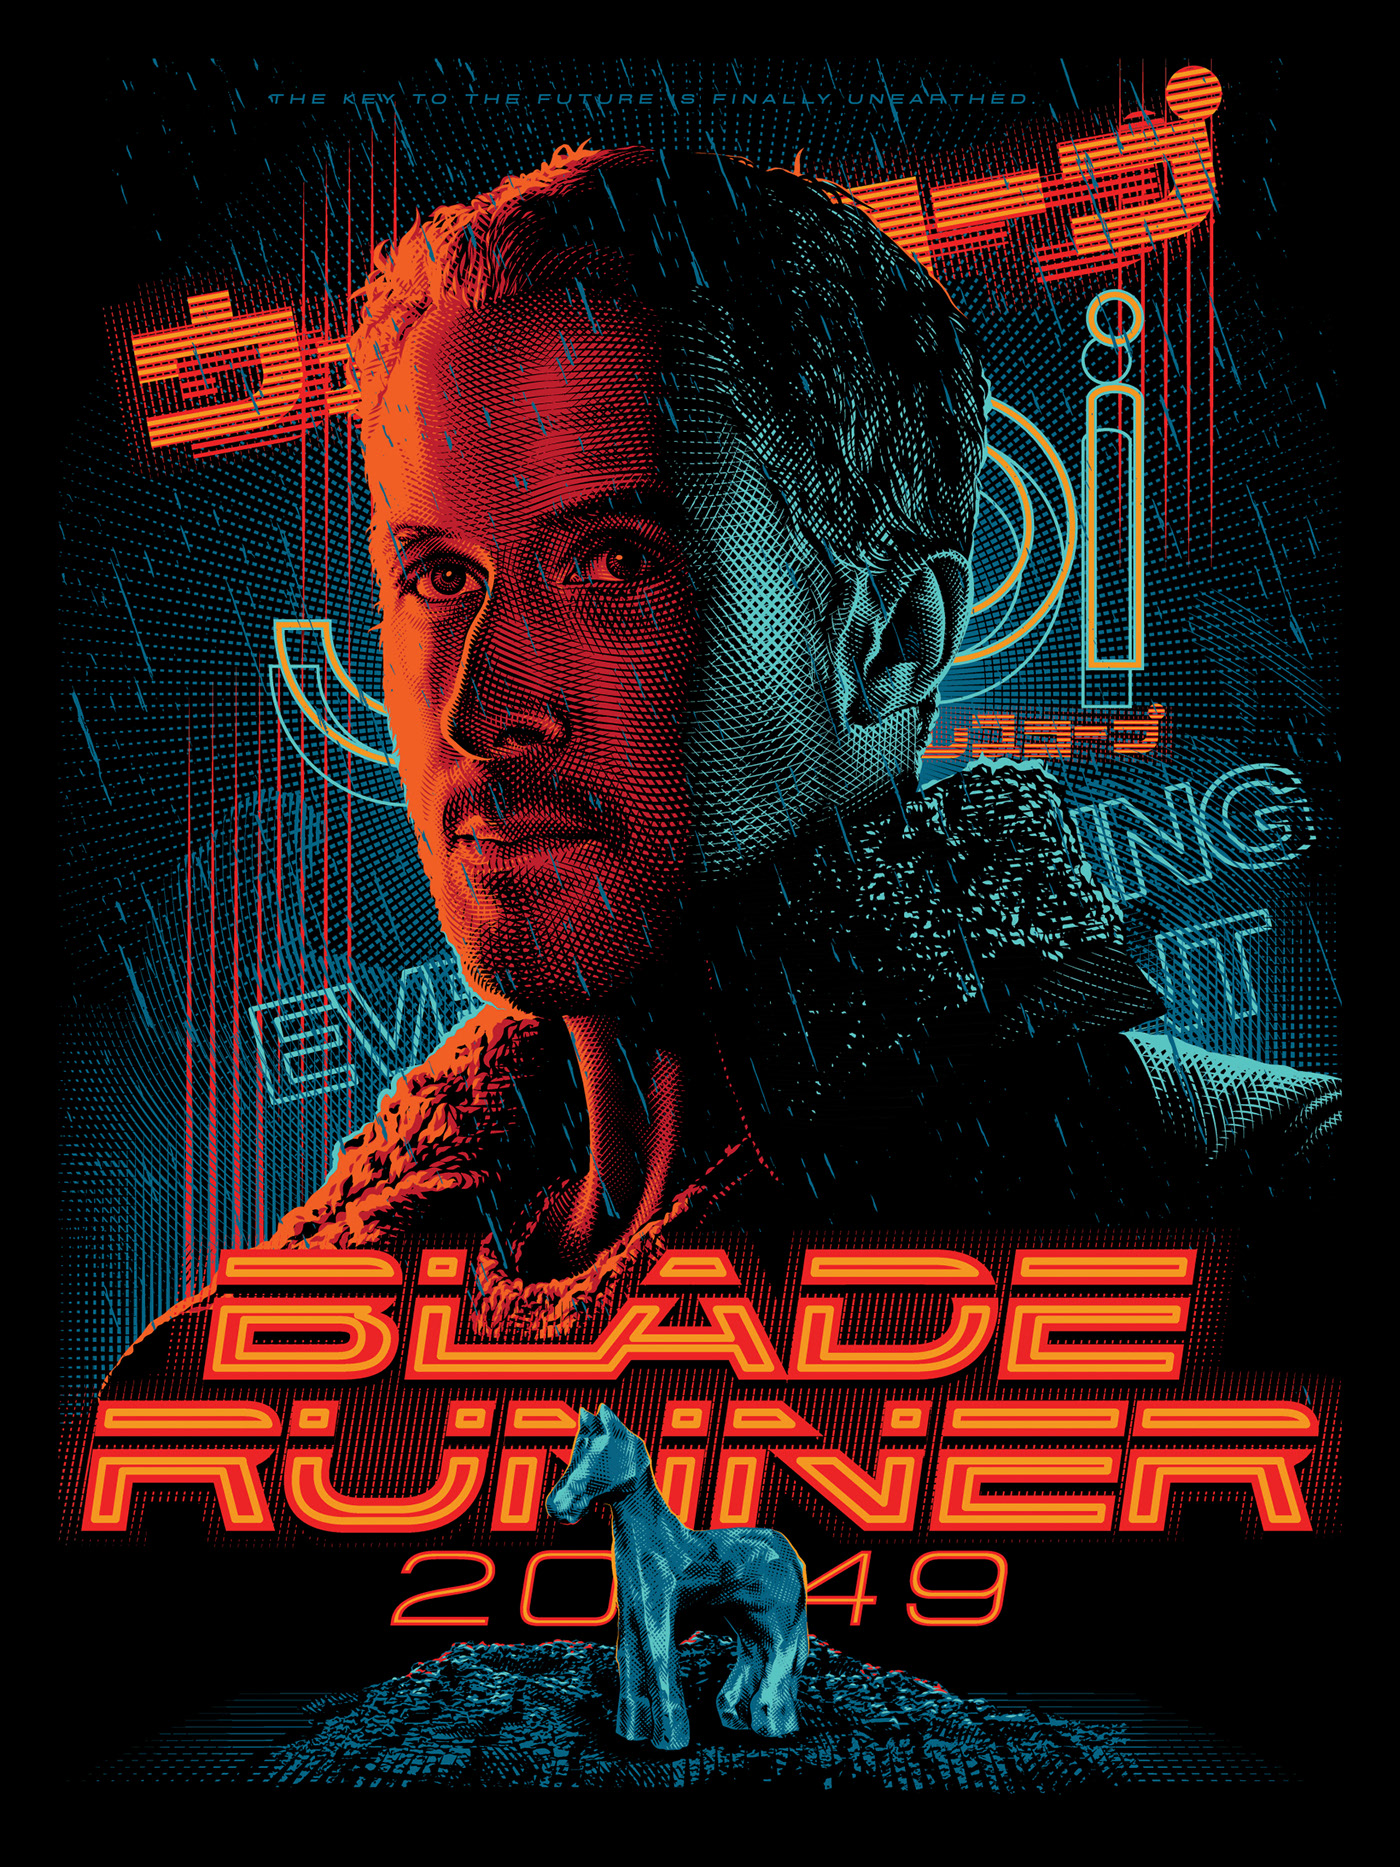 poster design portrait illustration bladerunner by tracie ching